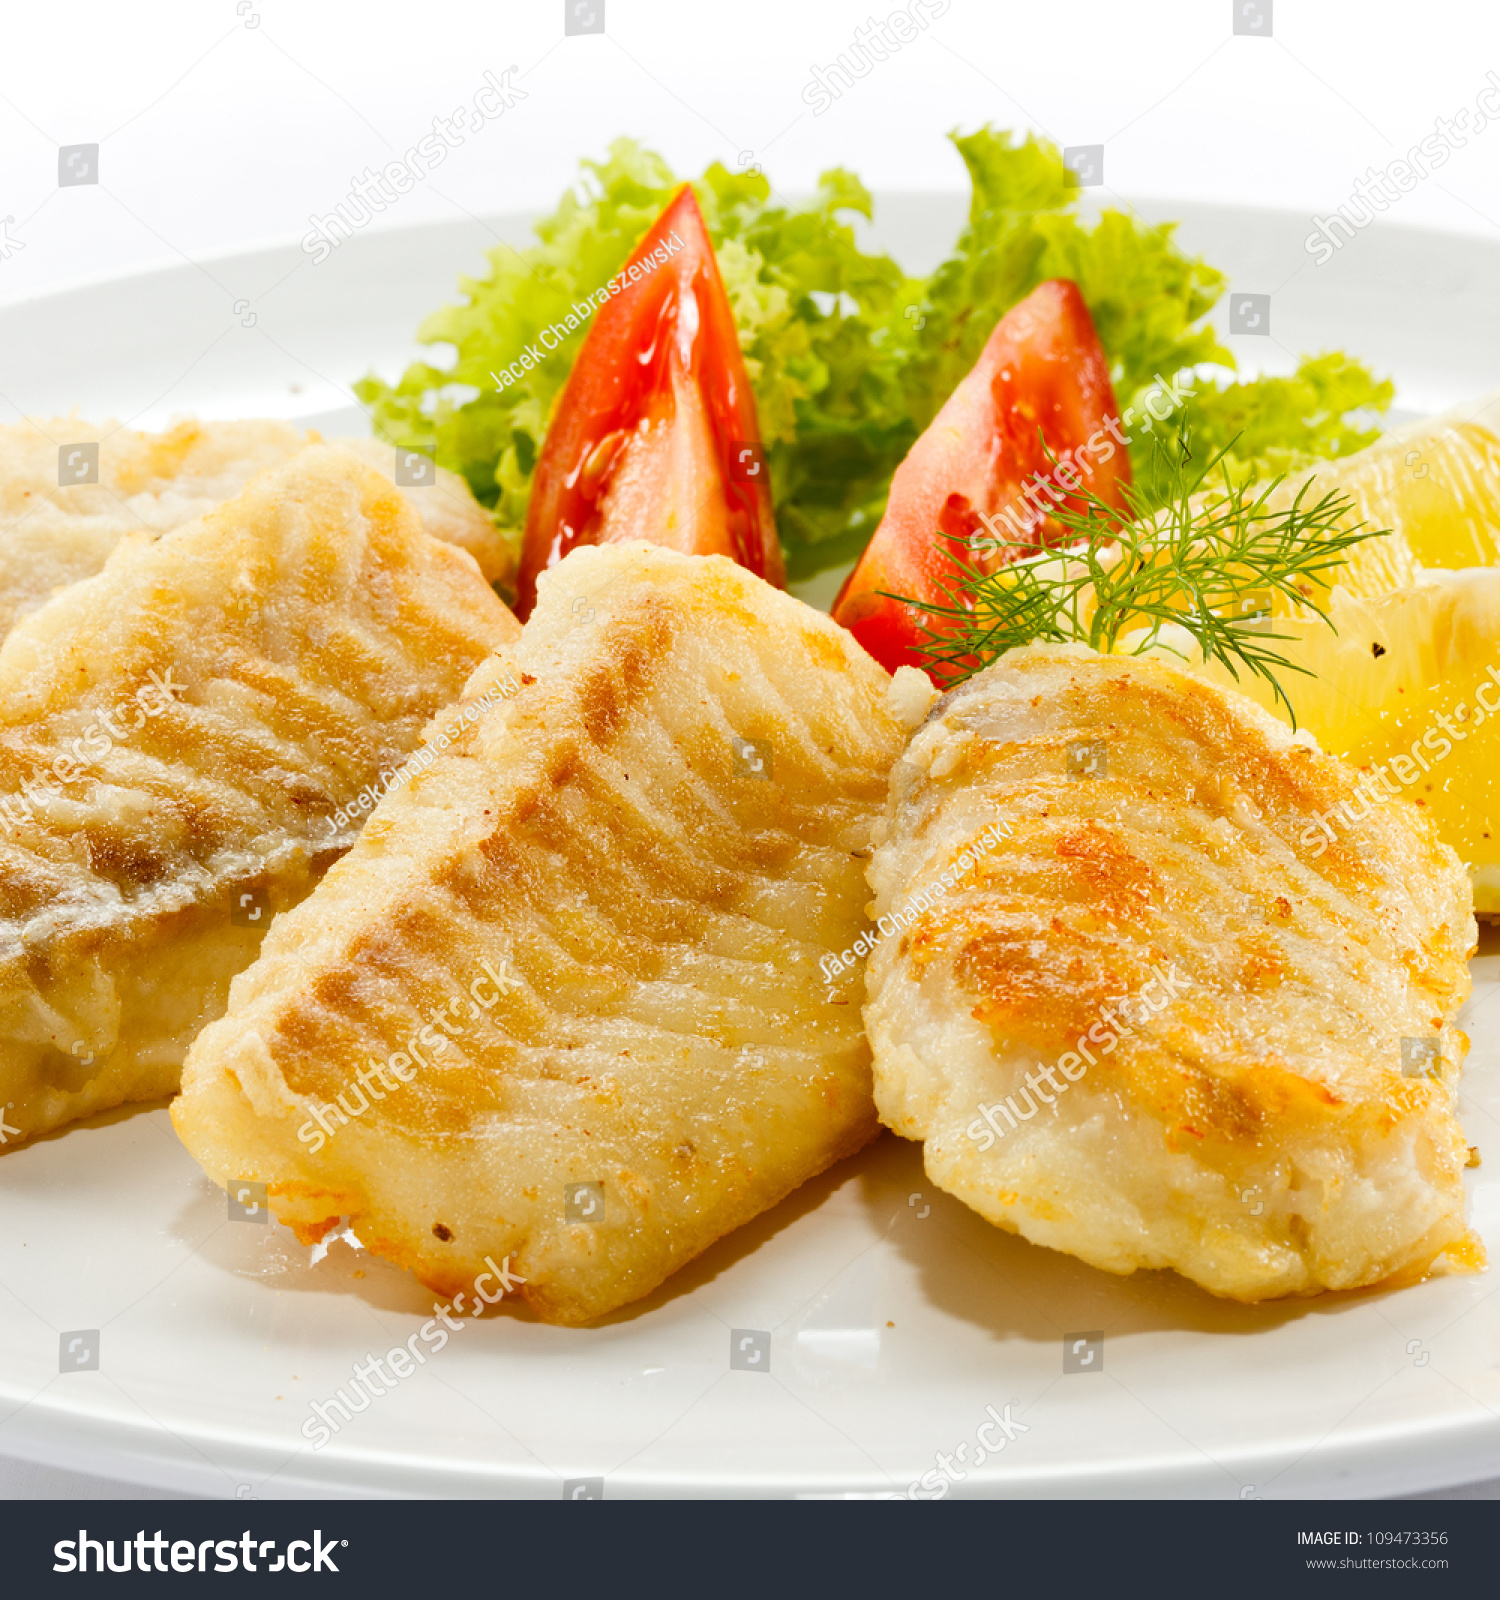 Fish Dish - Fried Fish Fillet With Vegetables Stock Photo 109473356 ...